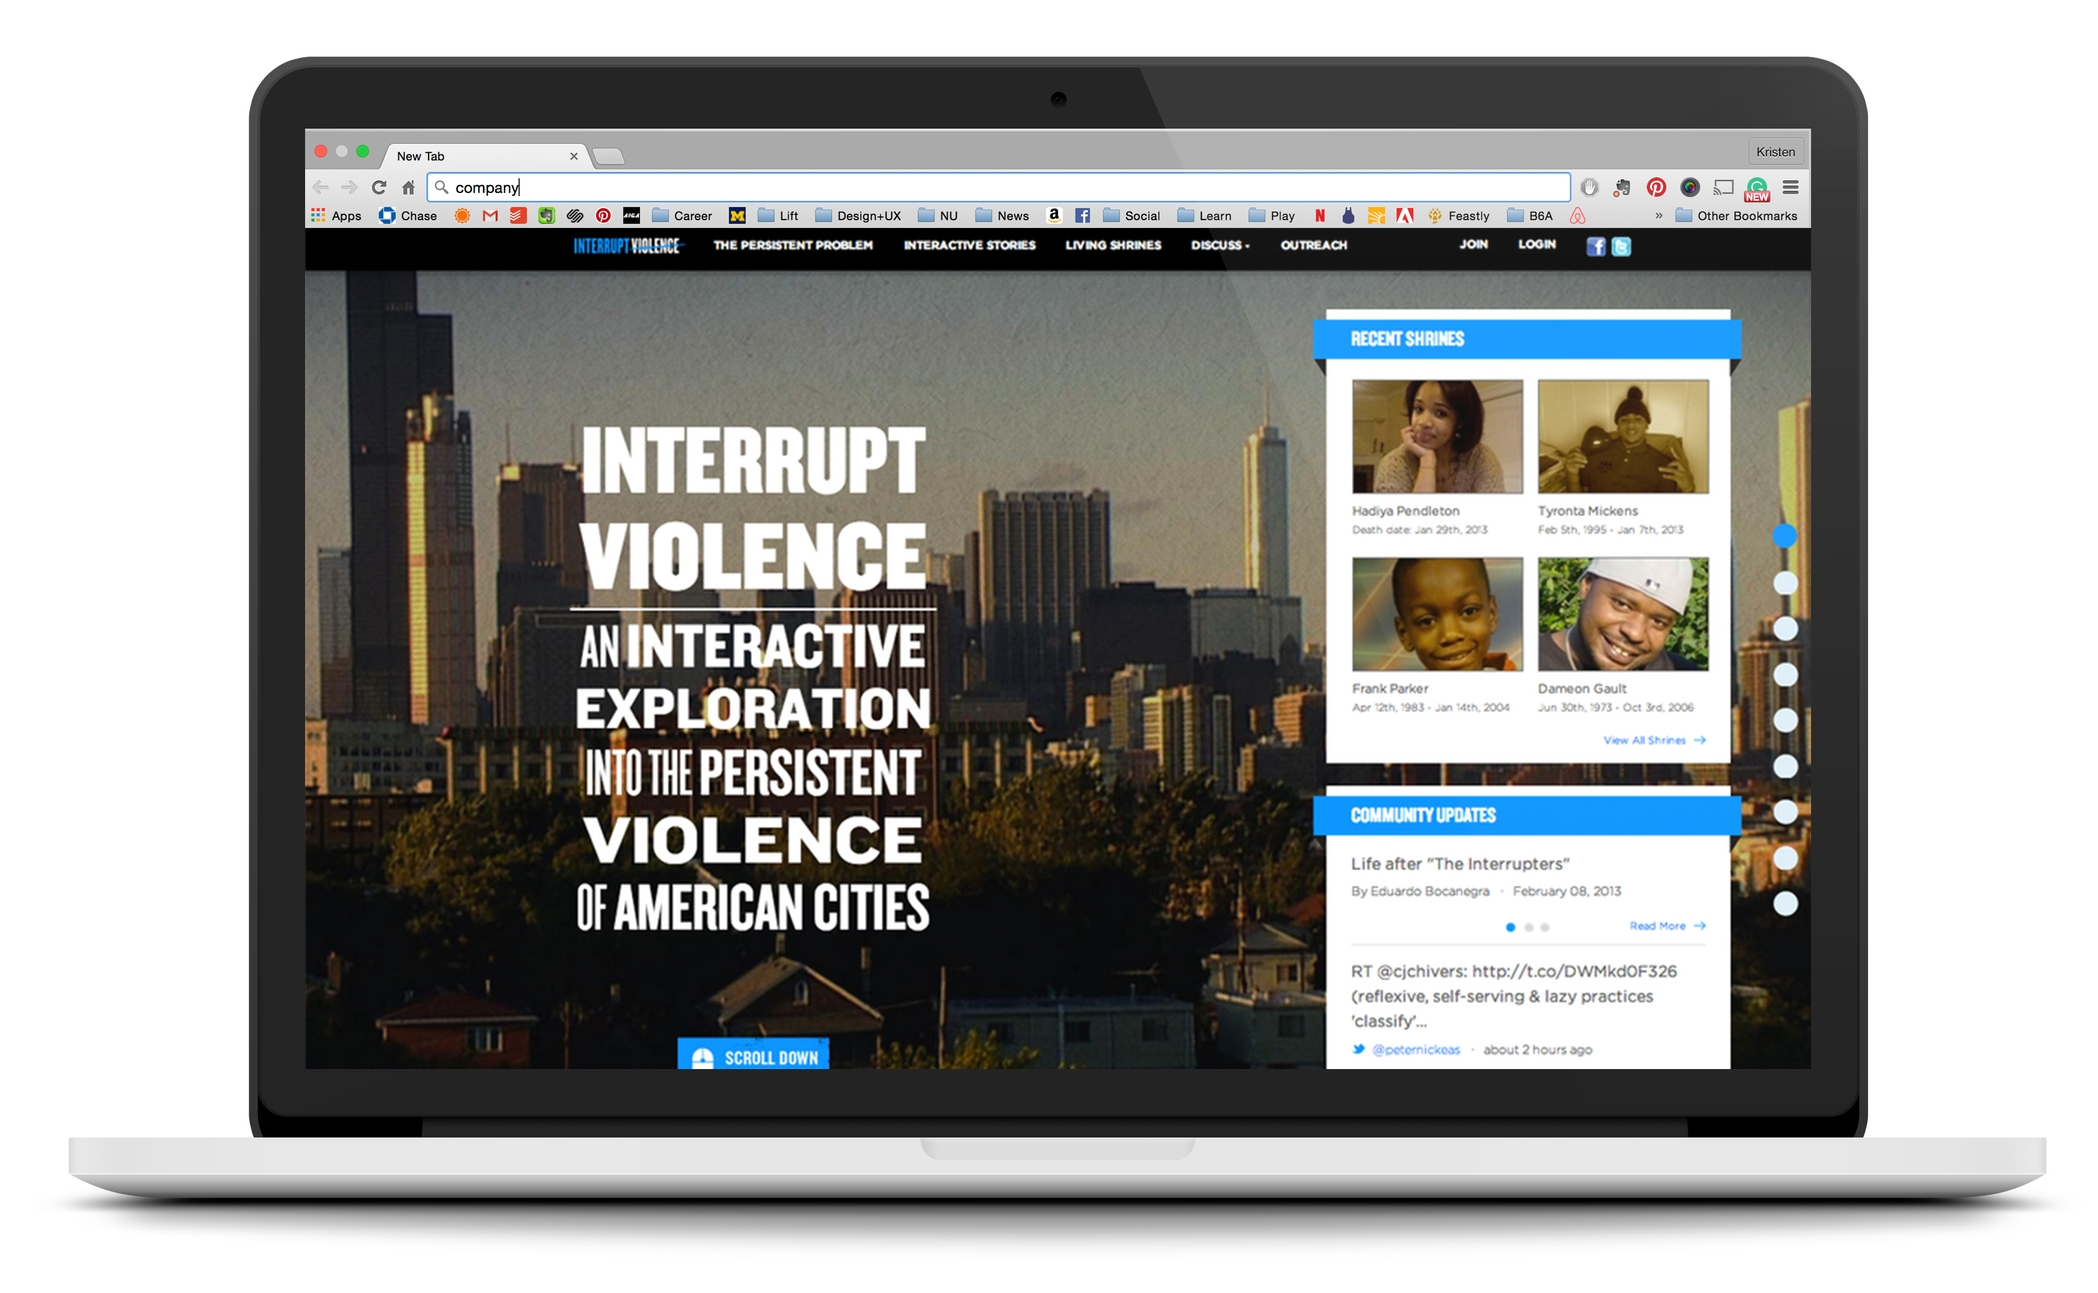 InterruptViolence.com, the outreach campaign for the Emmy Award Winning film The Interrupters, served as a hub of community engagement and provided interactive curriculum that taught Common Core aligned conflict resolution strategies. -